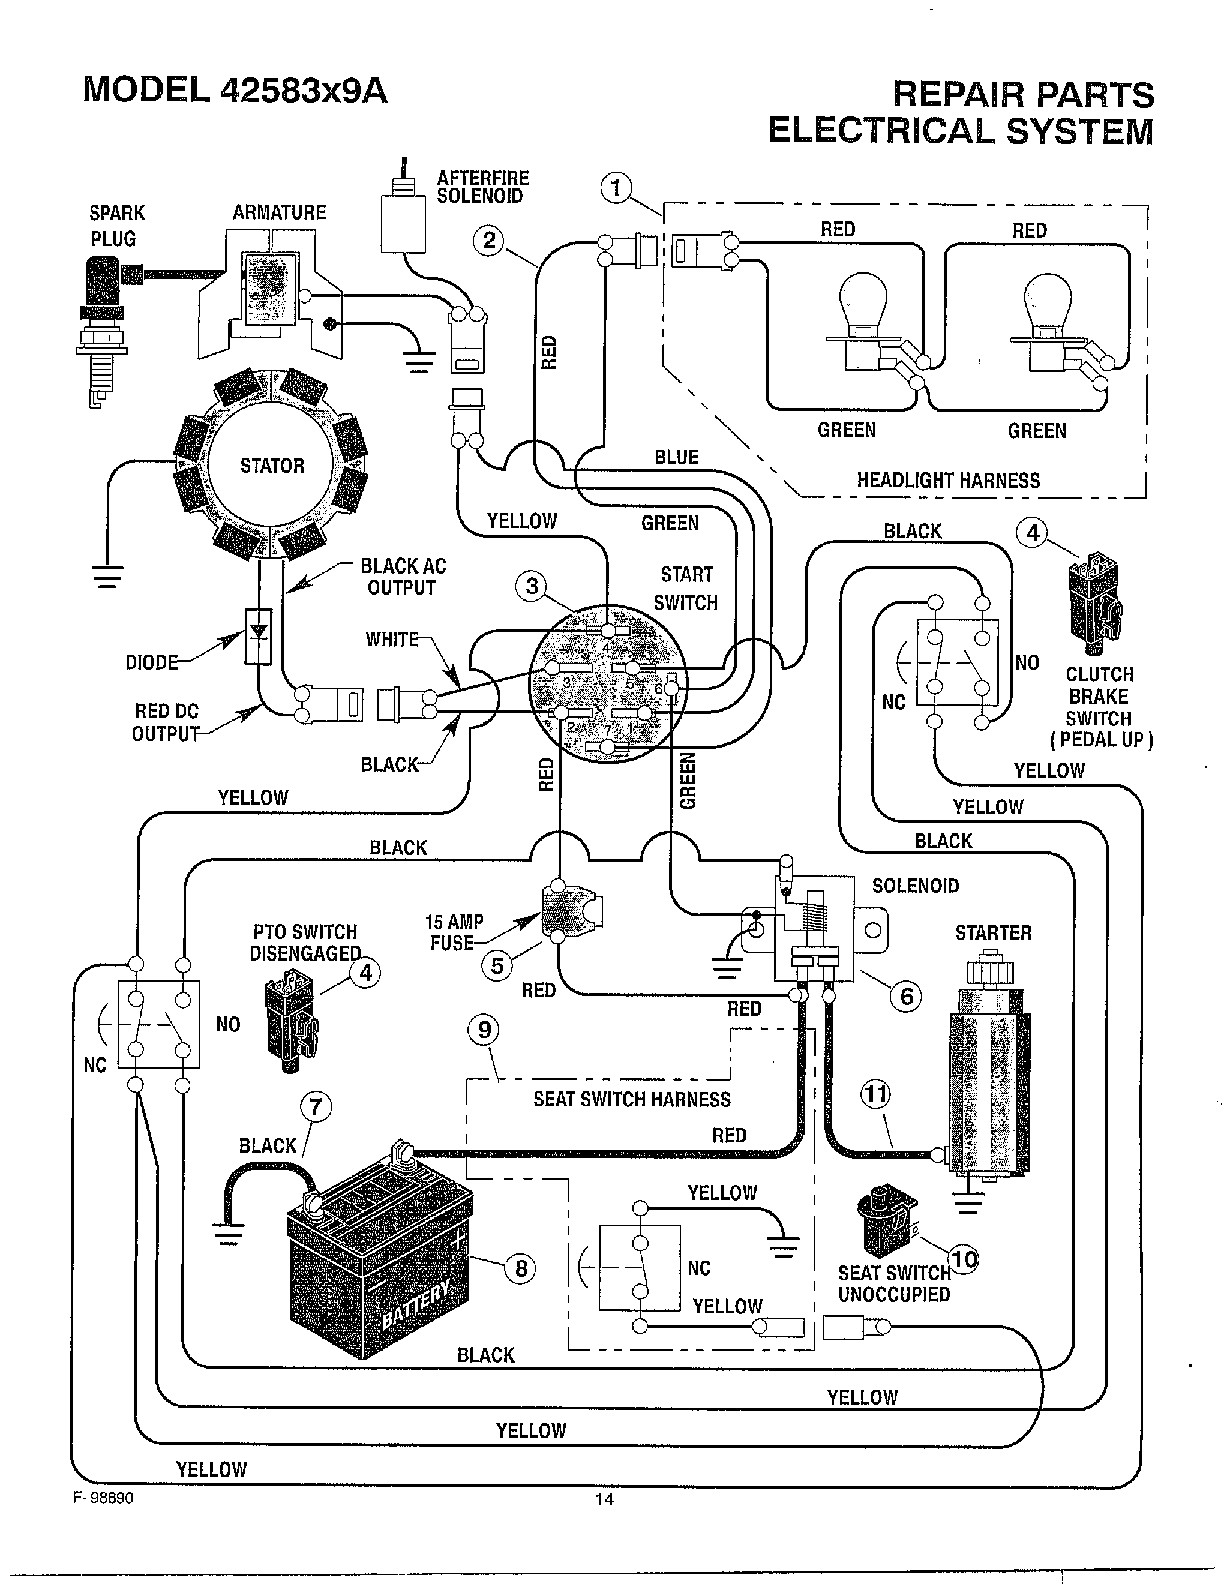 Briggs And Stratton Vanguard Wiring Diagram from mainetreasurechest.com